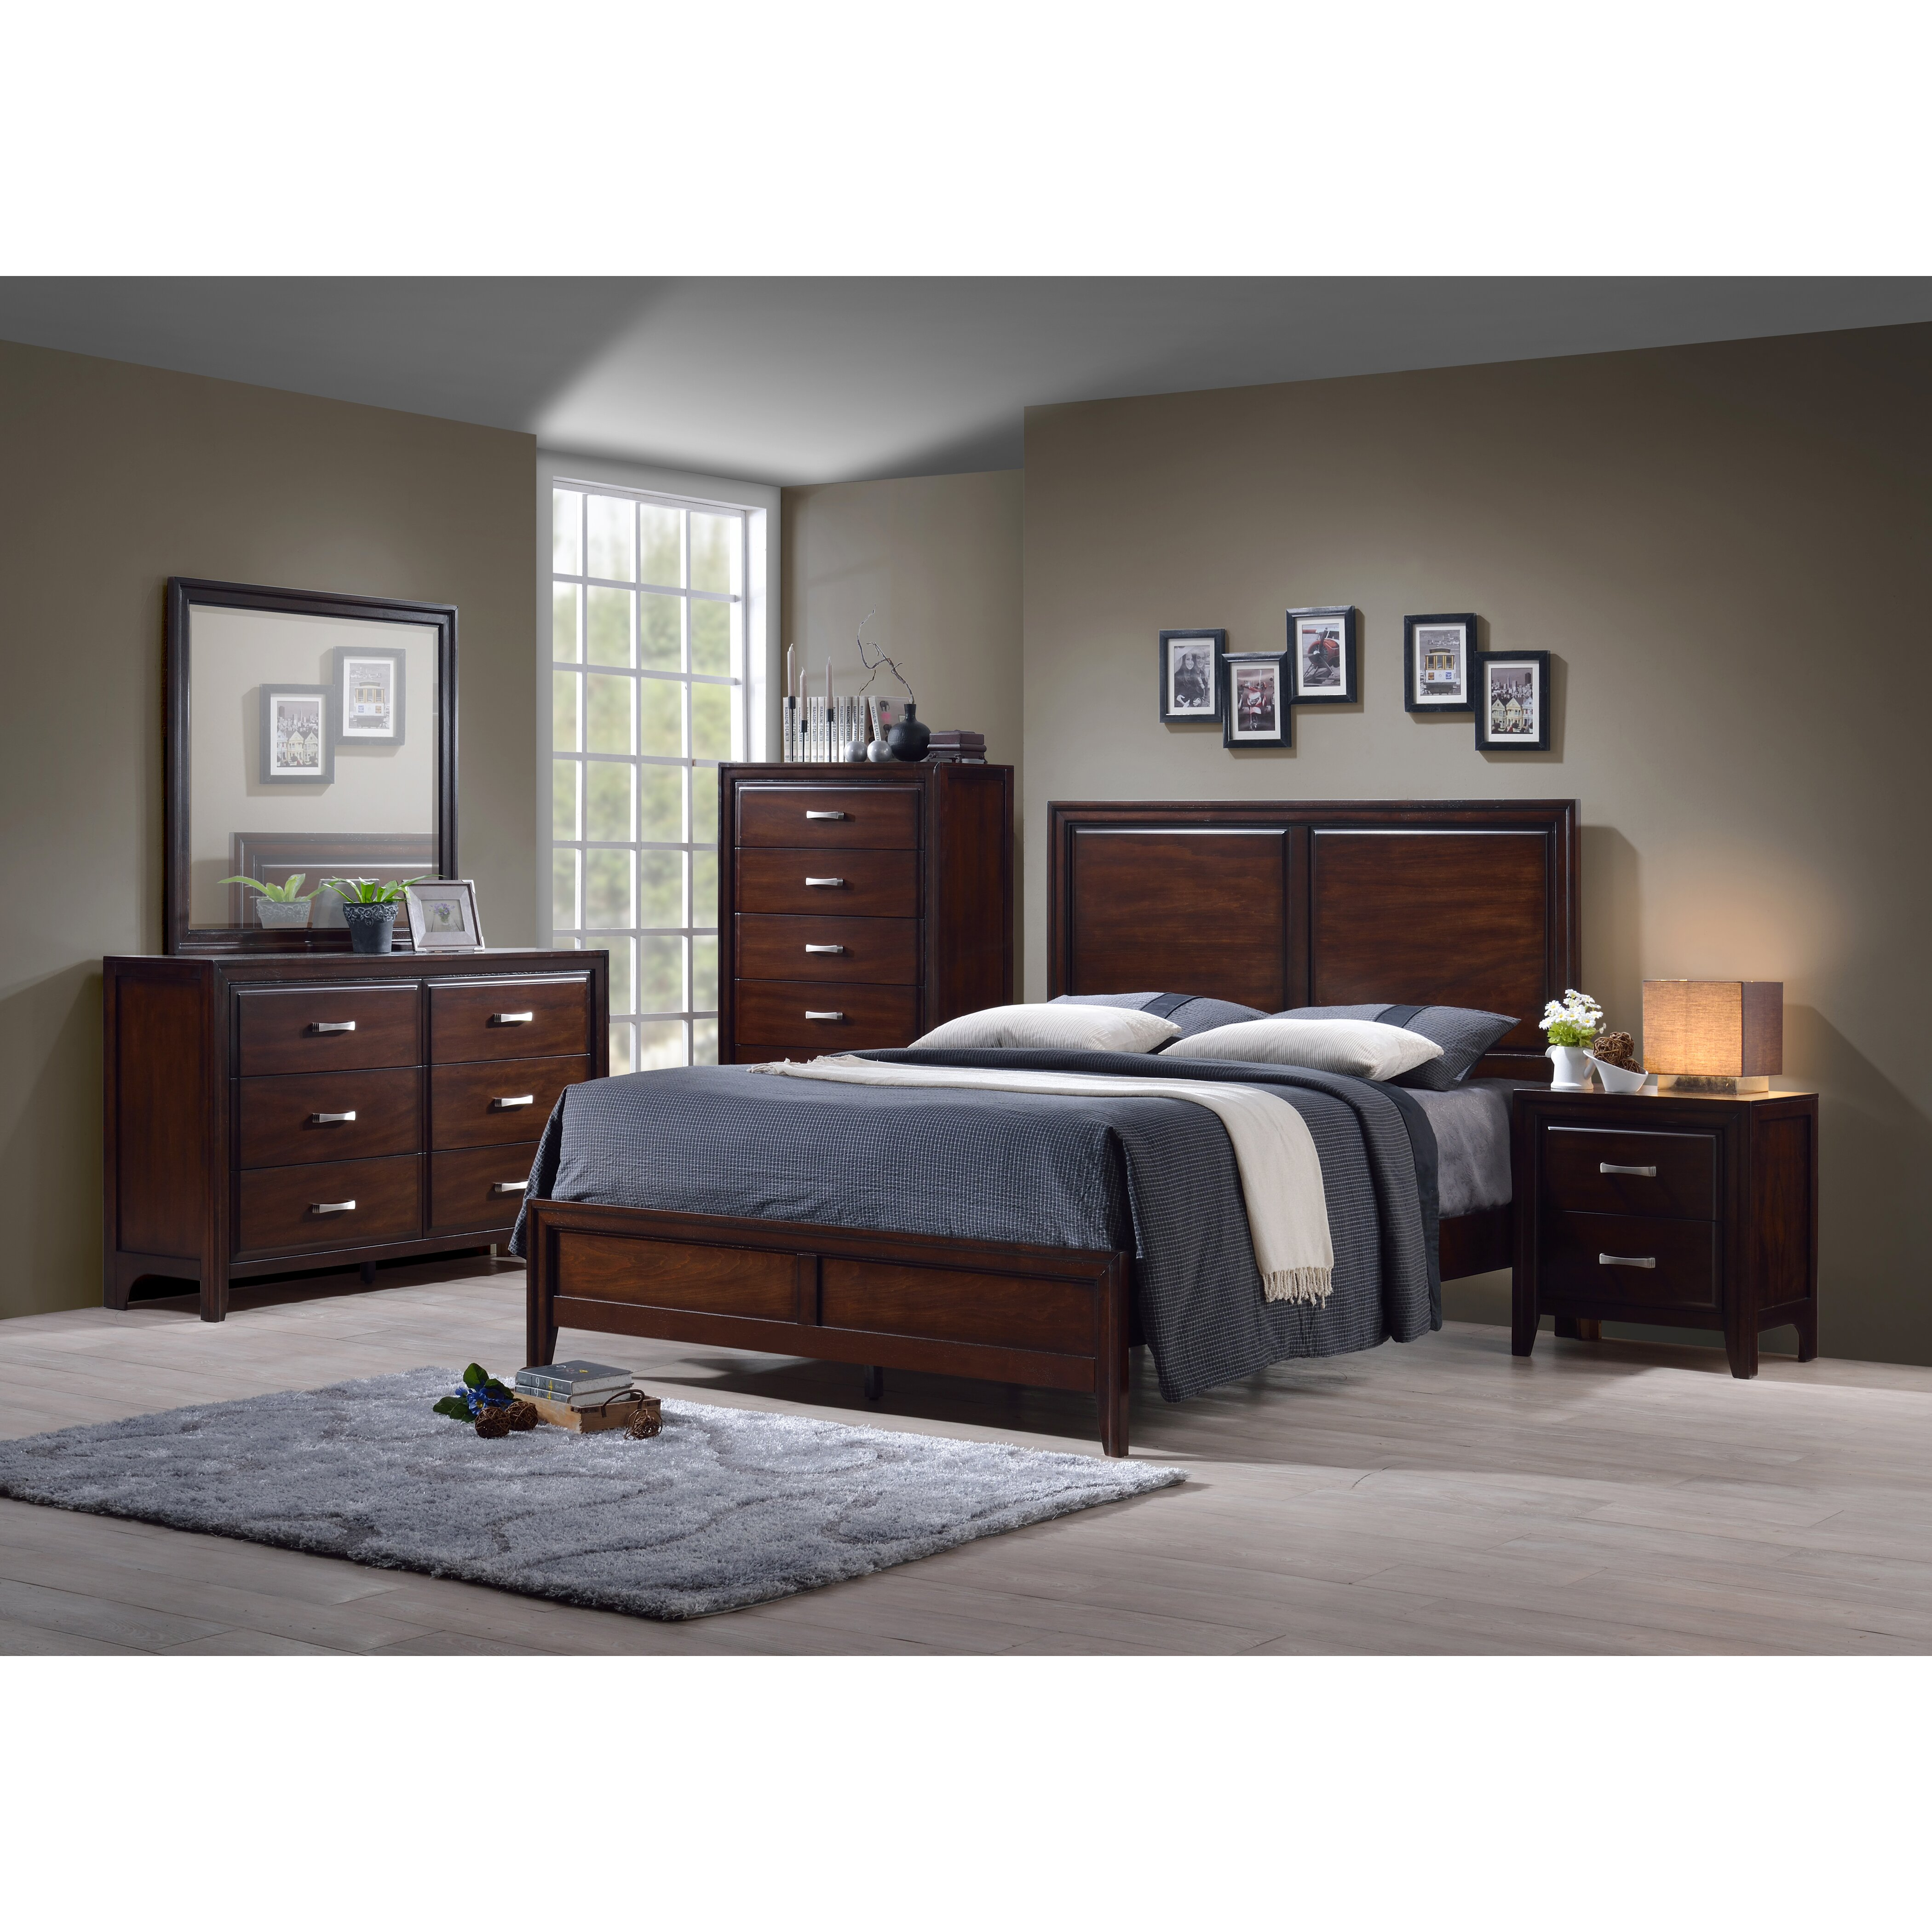 Simmons Bedroom Furniture Alcott Hill Casegoods Agathis Panel Customizable